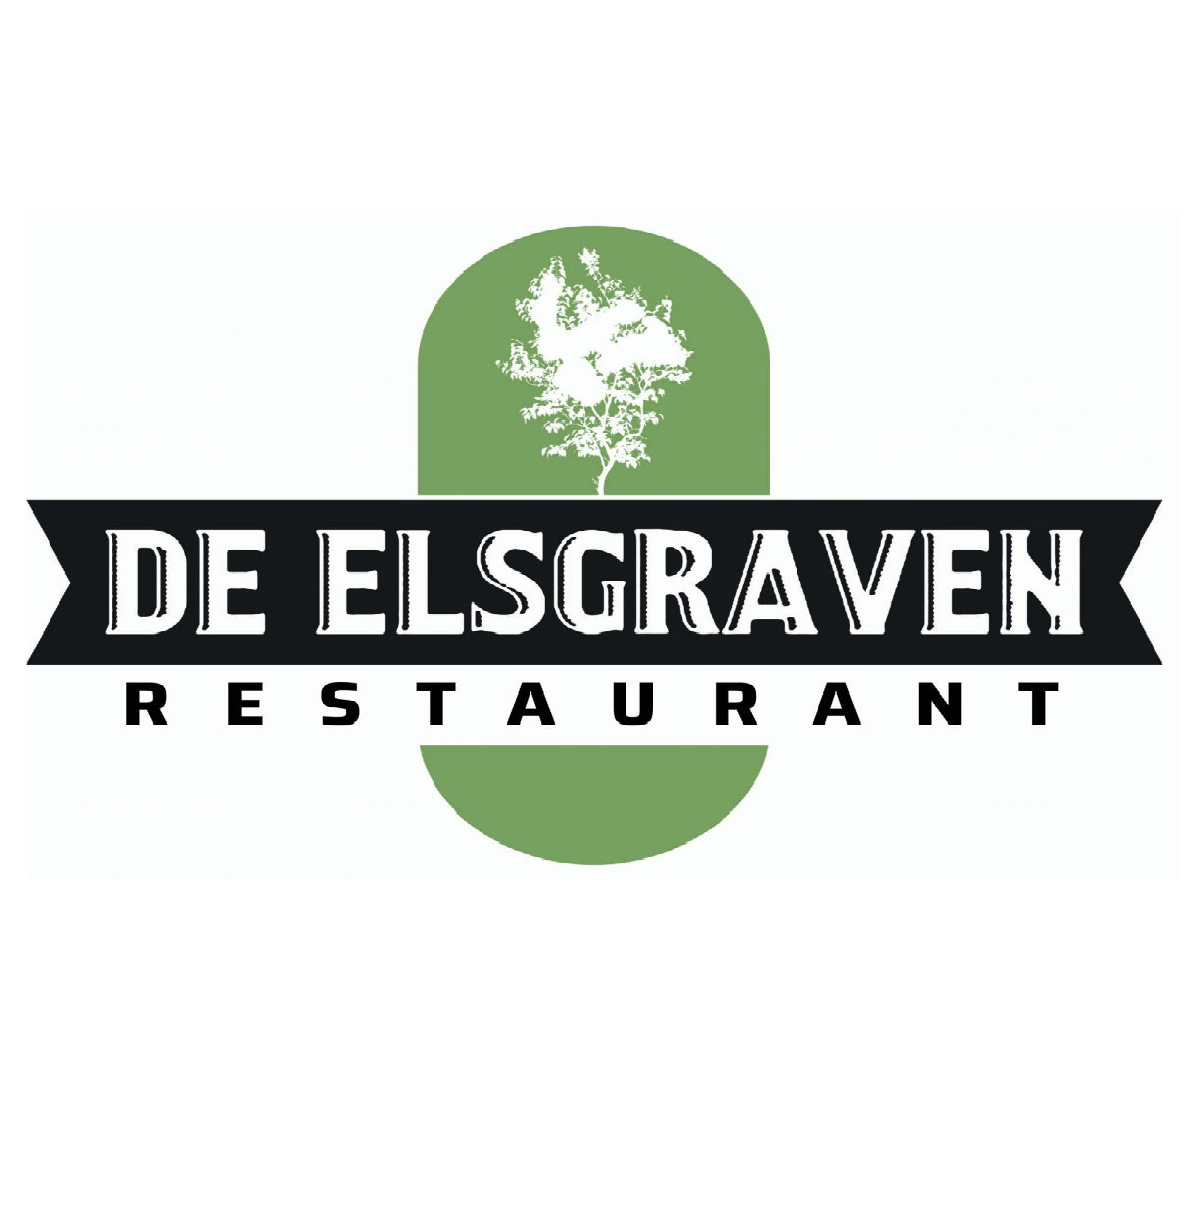 Restaurant De Elsgraven in Enter.